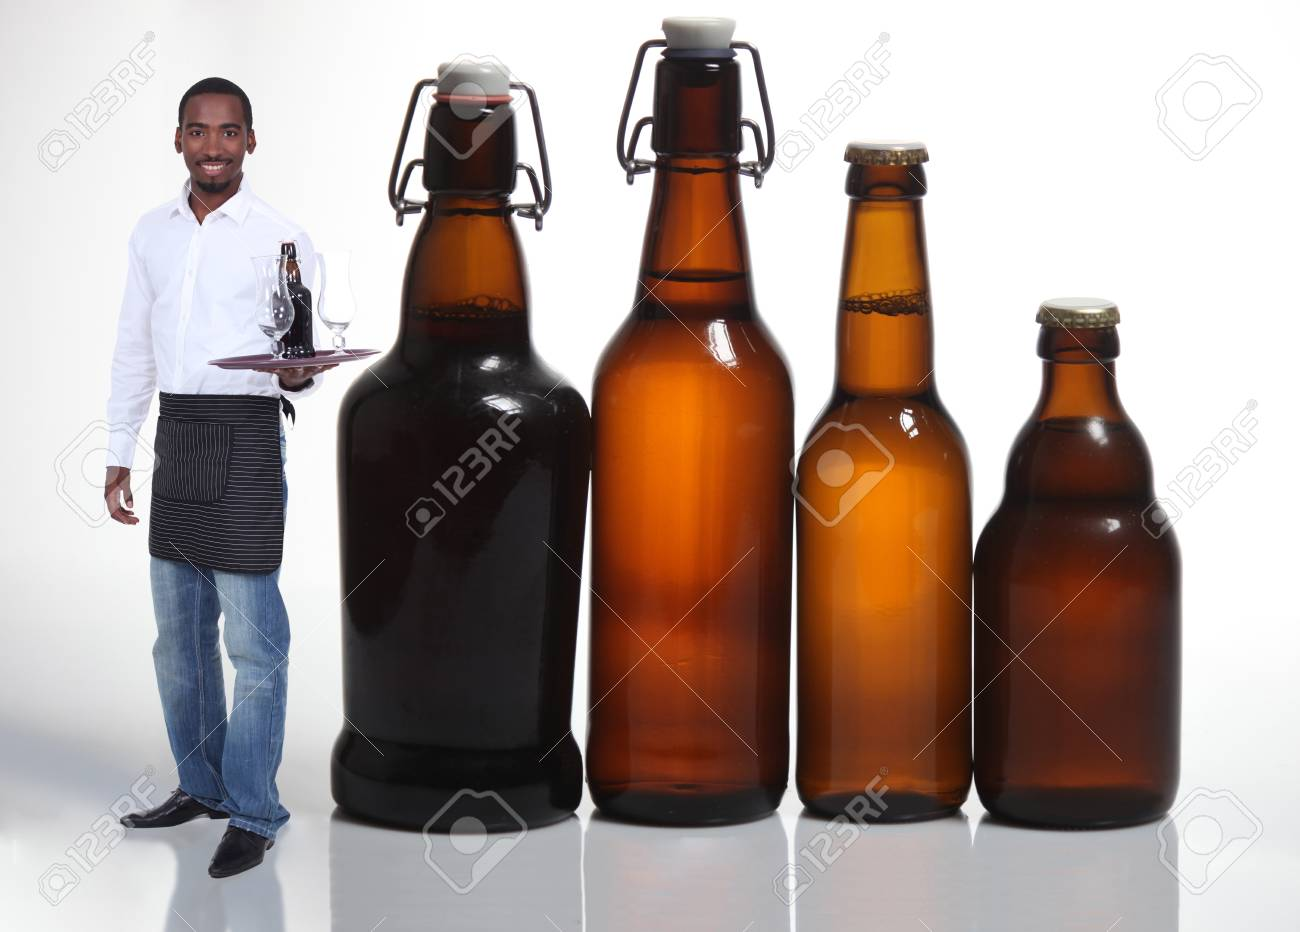 Waiter with beer bottles Stock Photo - 11797614